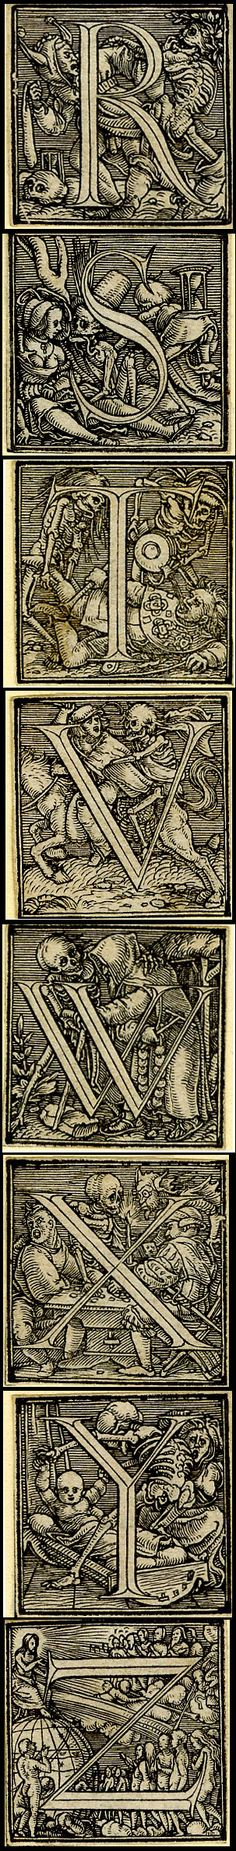 from Holbein's Dance of Death Alphabet. © The Trustees of the British Museum http://www.britishmuseum.org